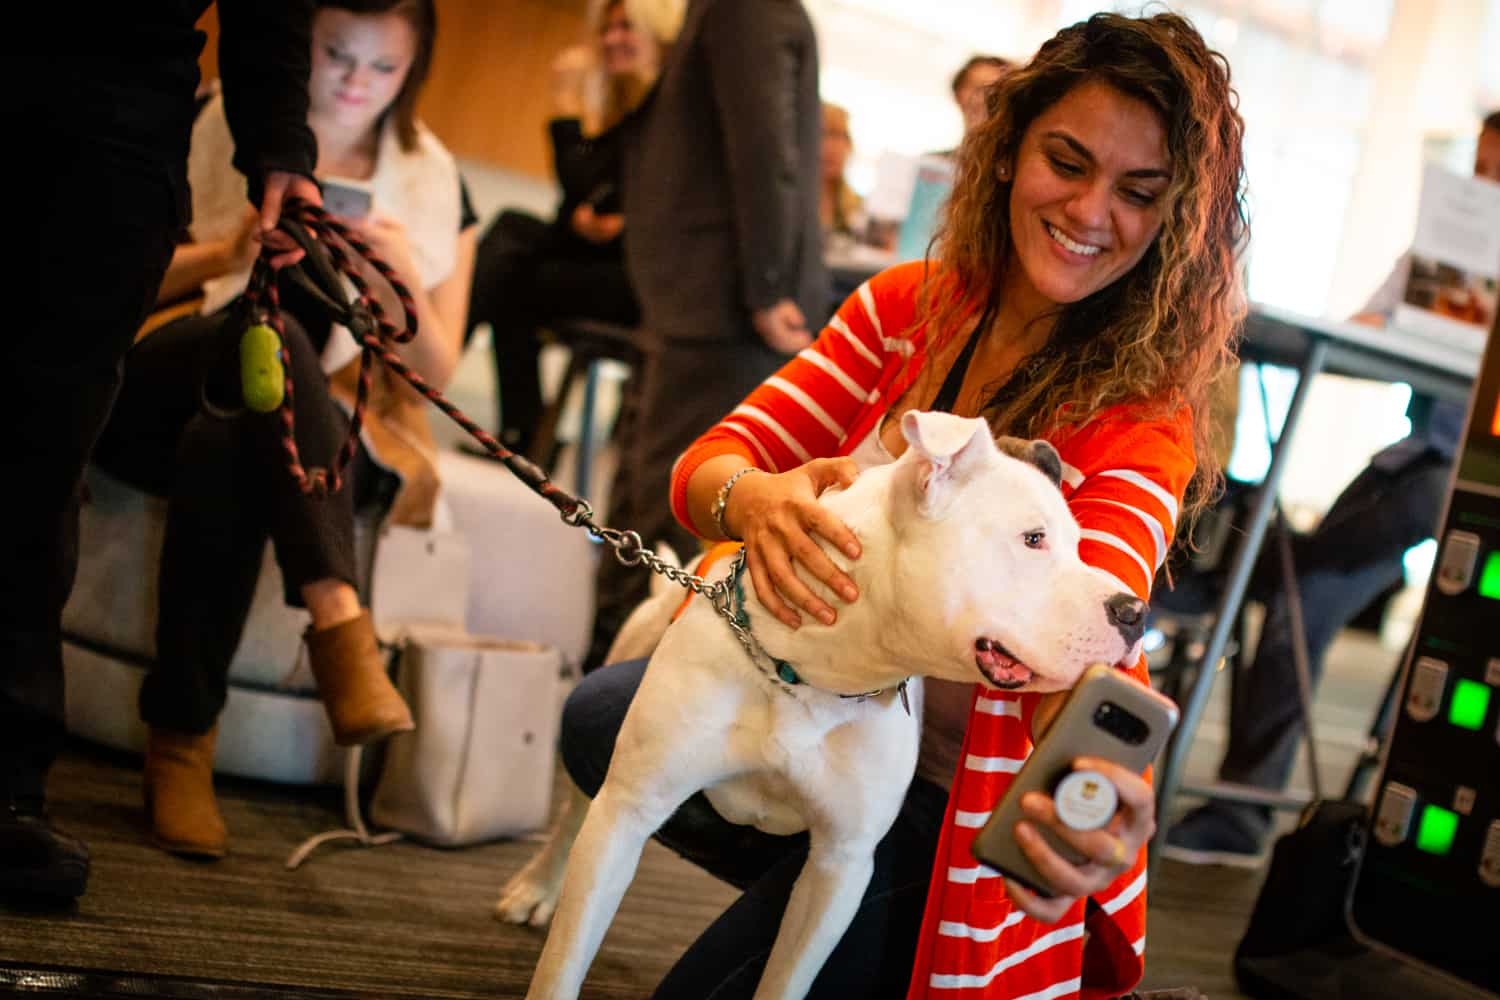 Presenting Sponsor Paywork's #PayItFWD booth was the site of a doggy adoption!